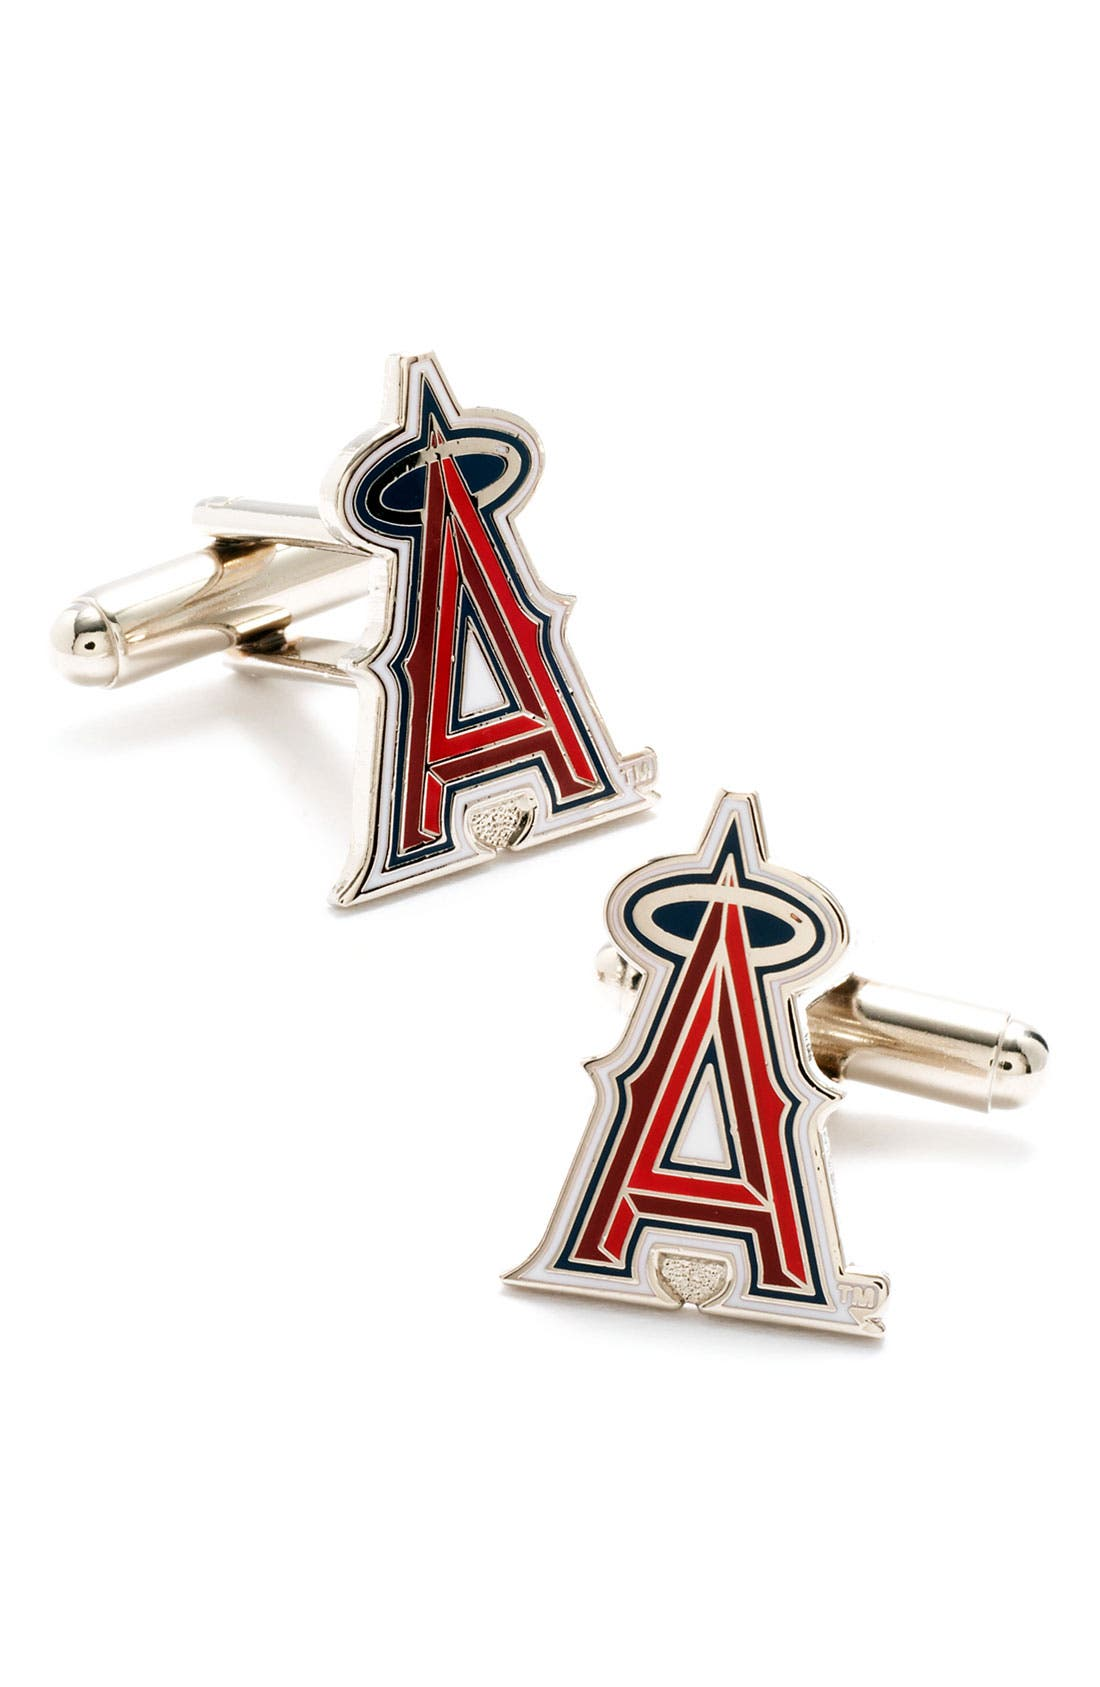 'Los Angeles Angels' Cuff Links,                             Main thumbnail 1, color,                             Red/ Black